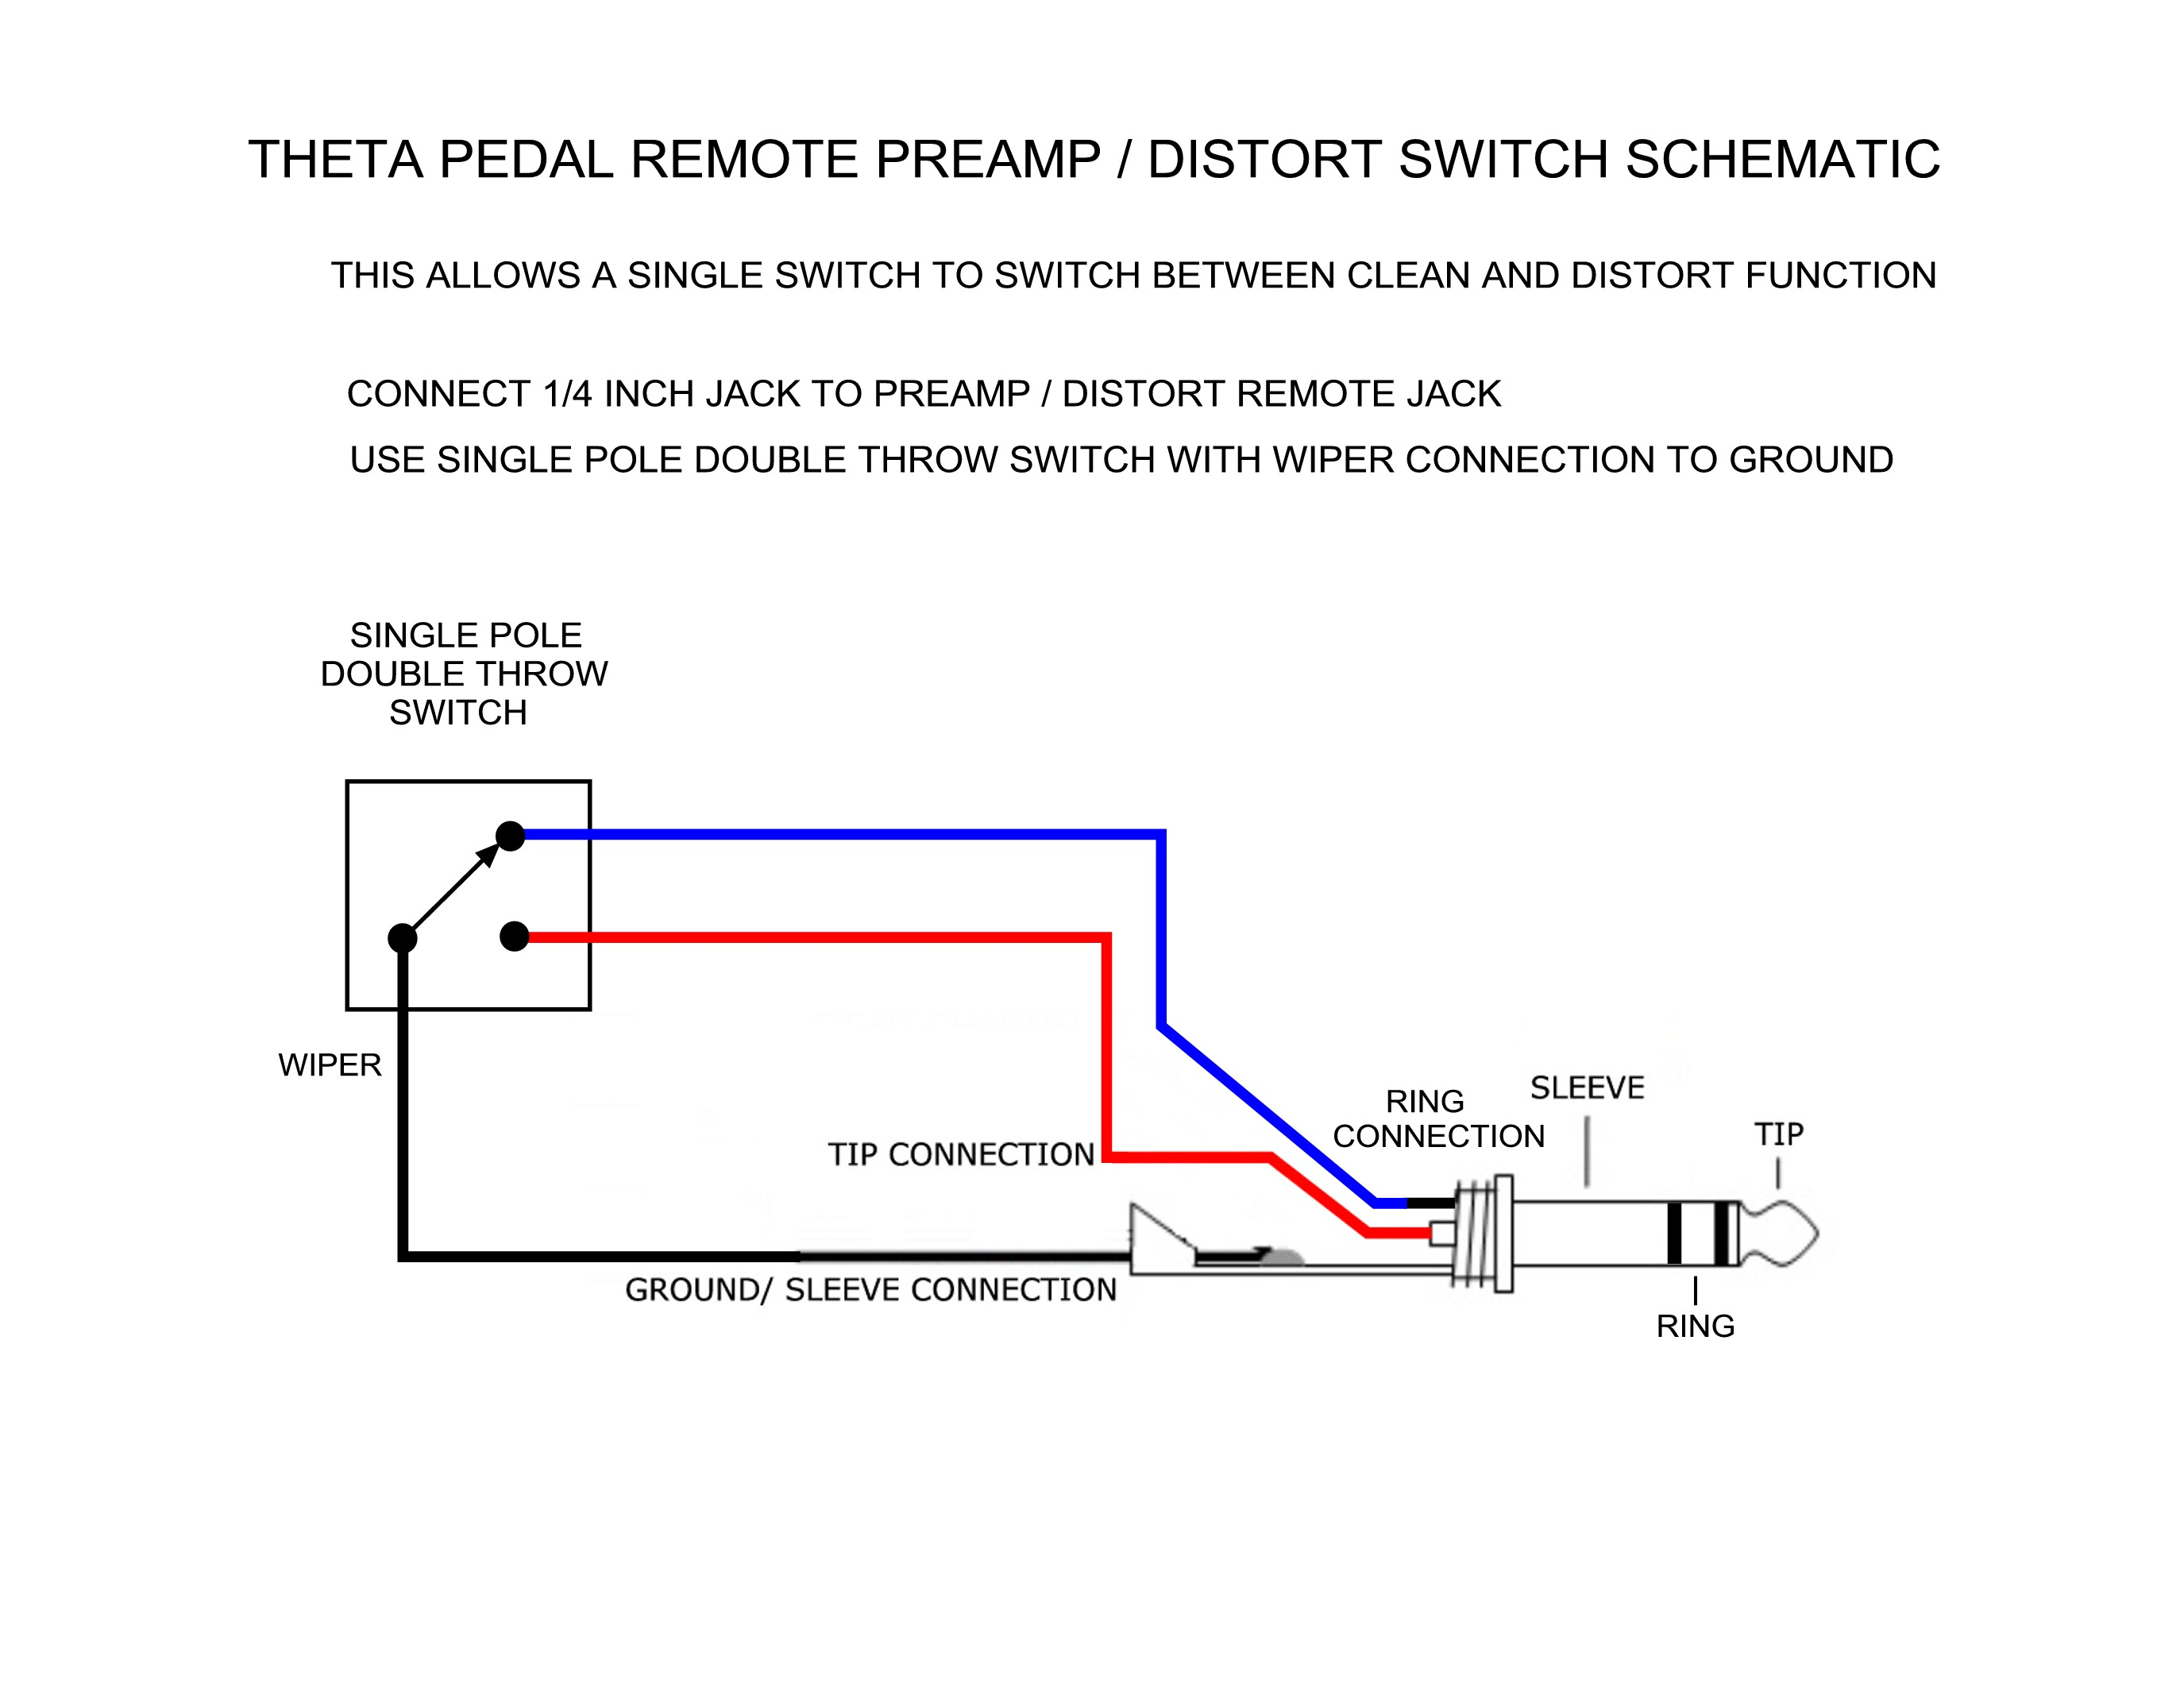 Product Faq Isp Technologiesisp Technologies Wiring A Switch And Schematic Combination Theta Pedal Remote